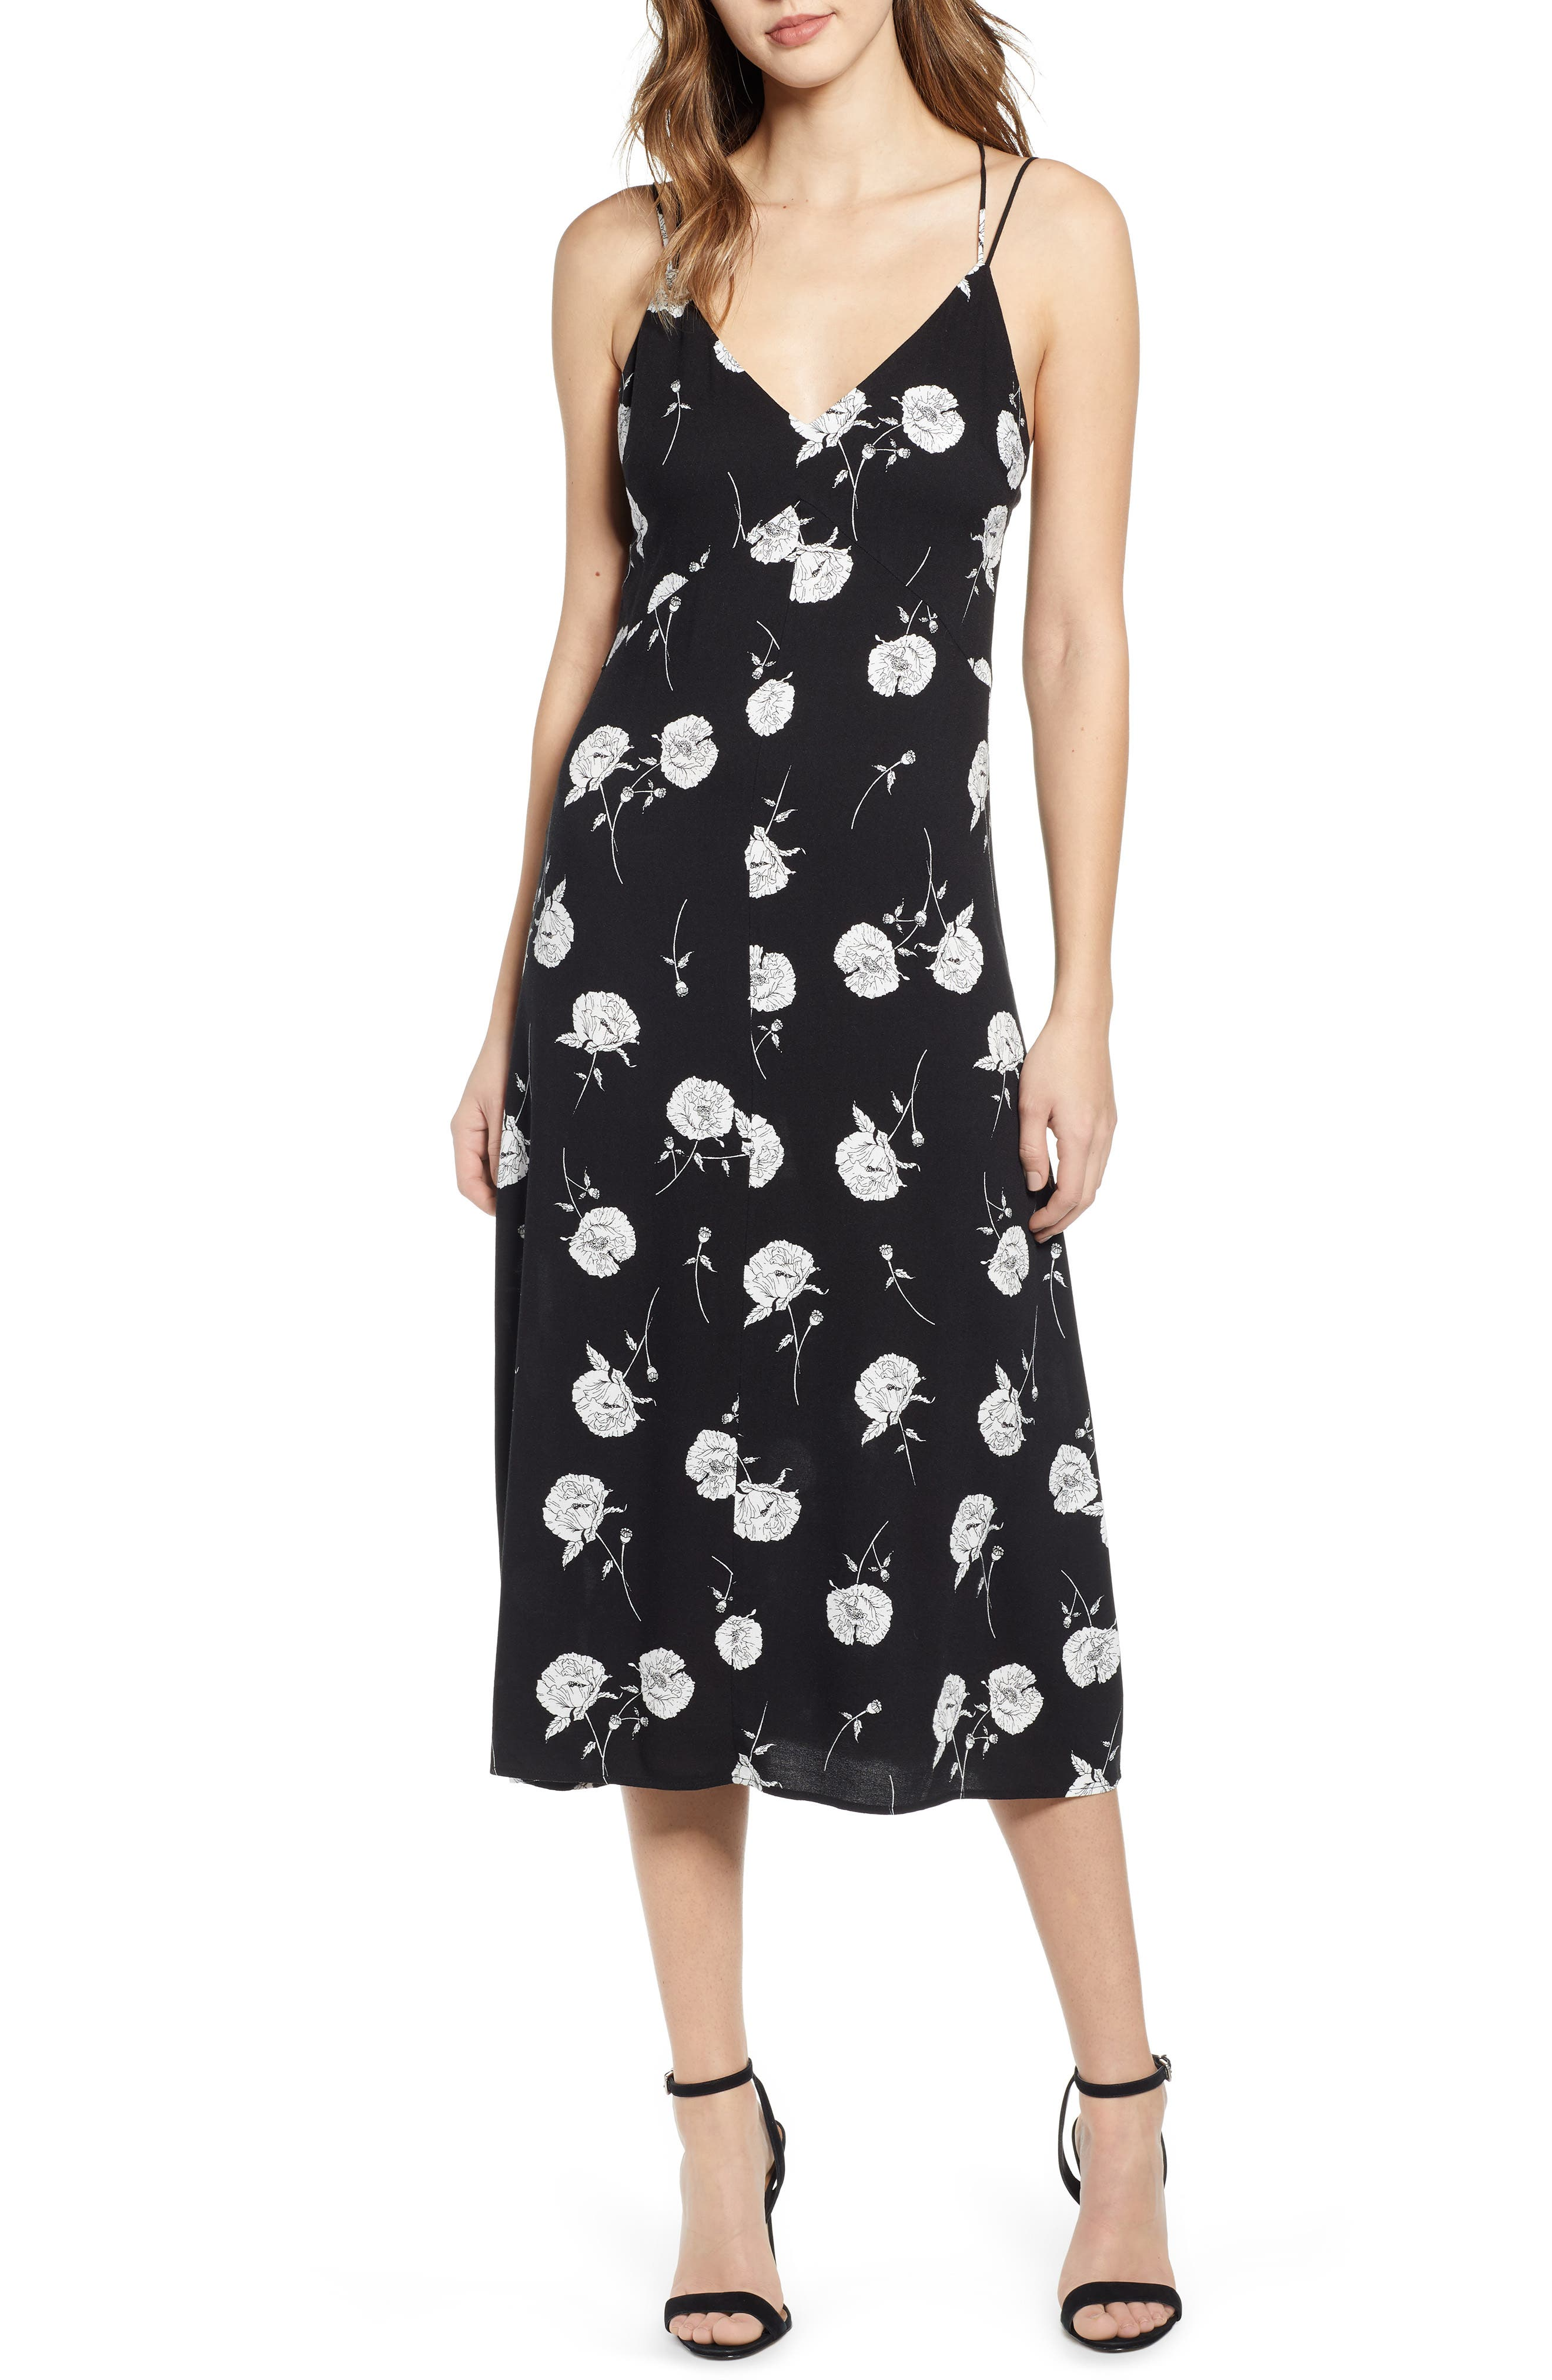 LEITH Floral Strappy Midi Dress, Main, color, BLACK TWO FLORAL